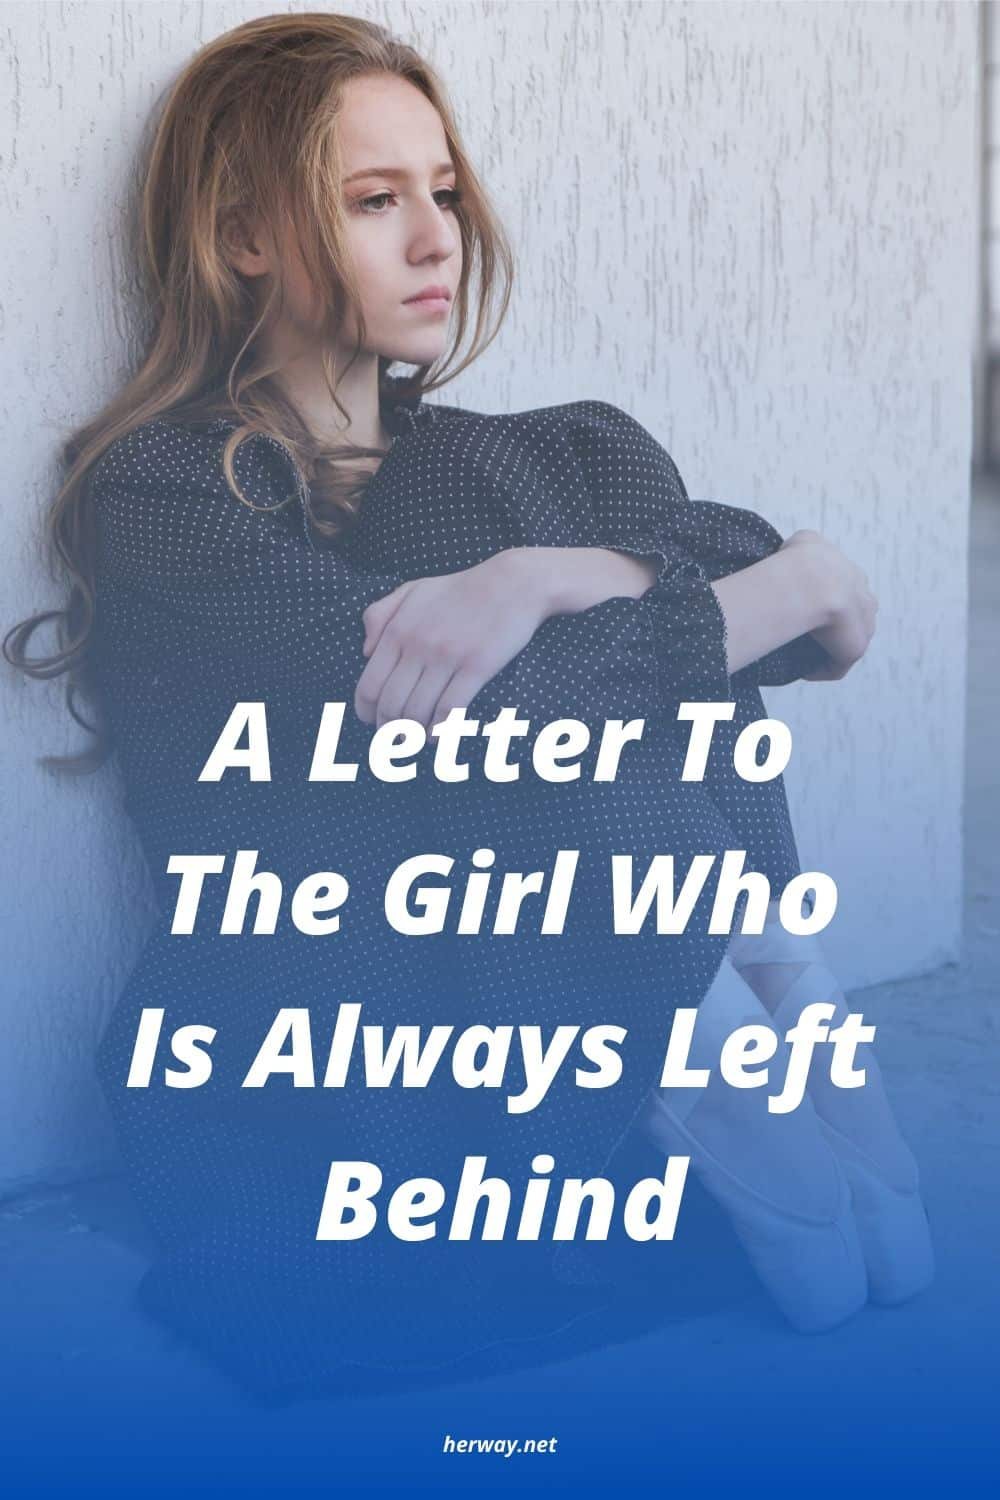 A Letter To The Girl Who Is Always Left Behind